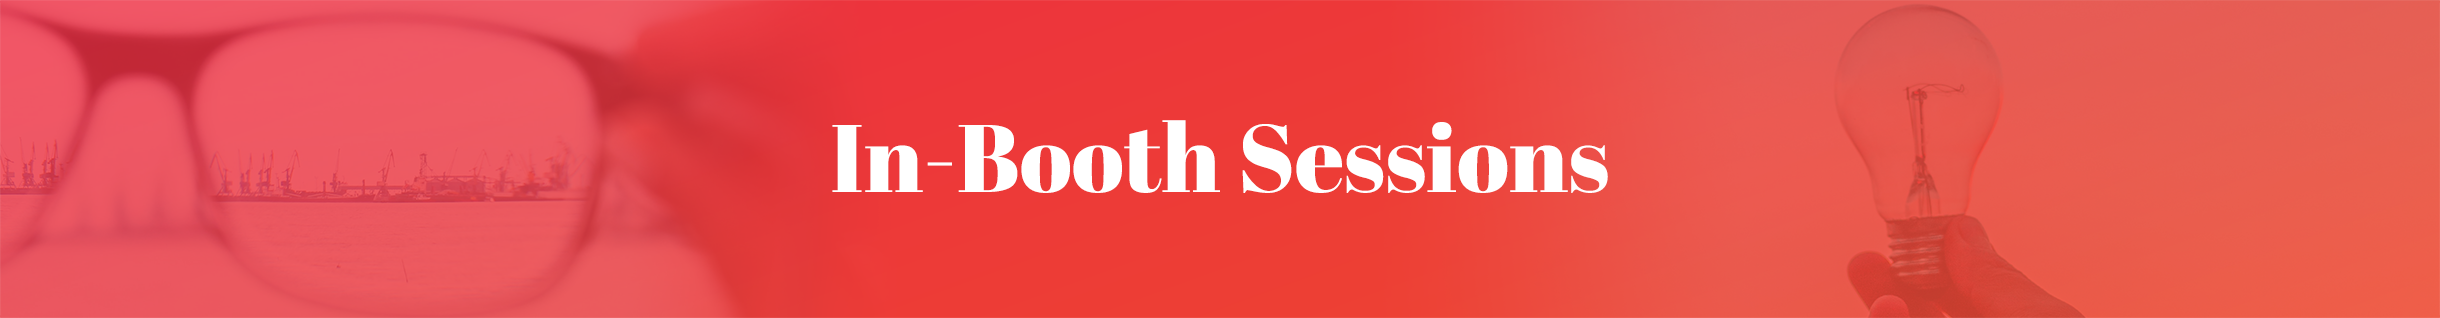 In-Booth Sponsor Sessions